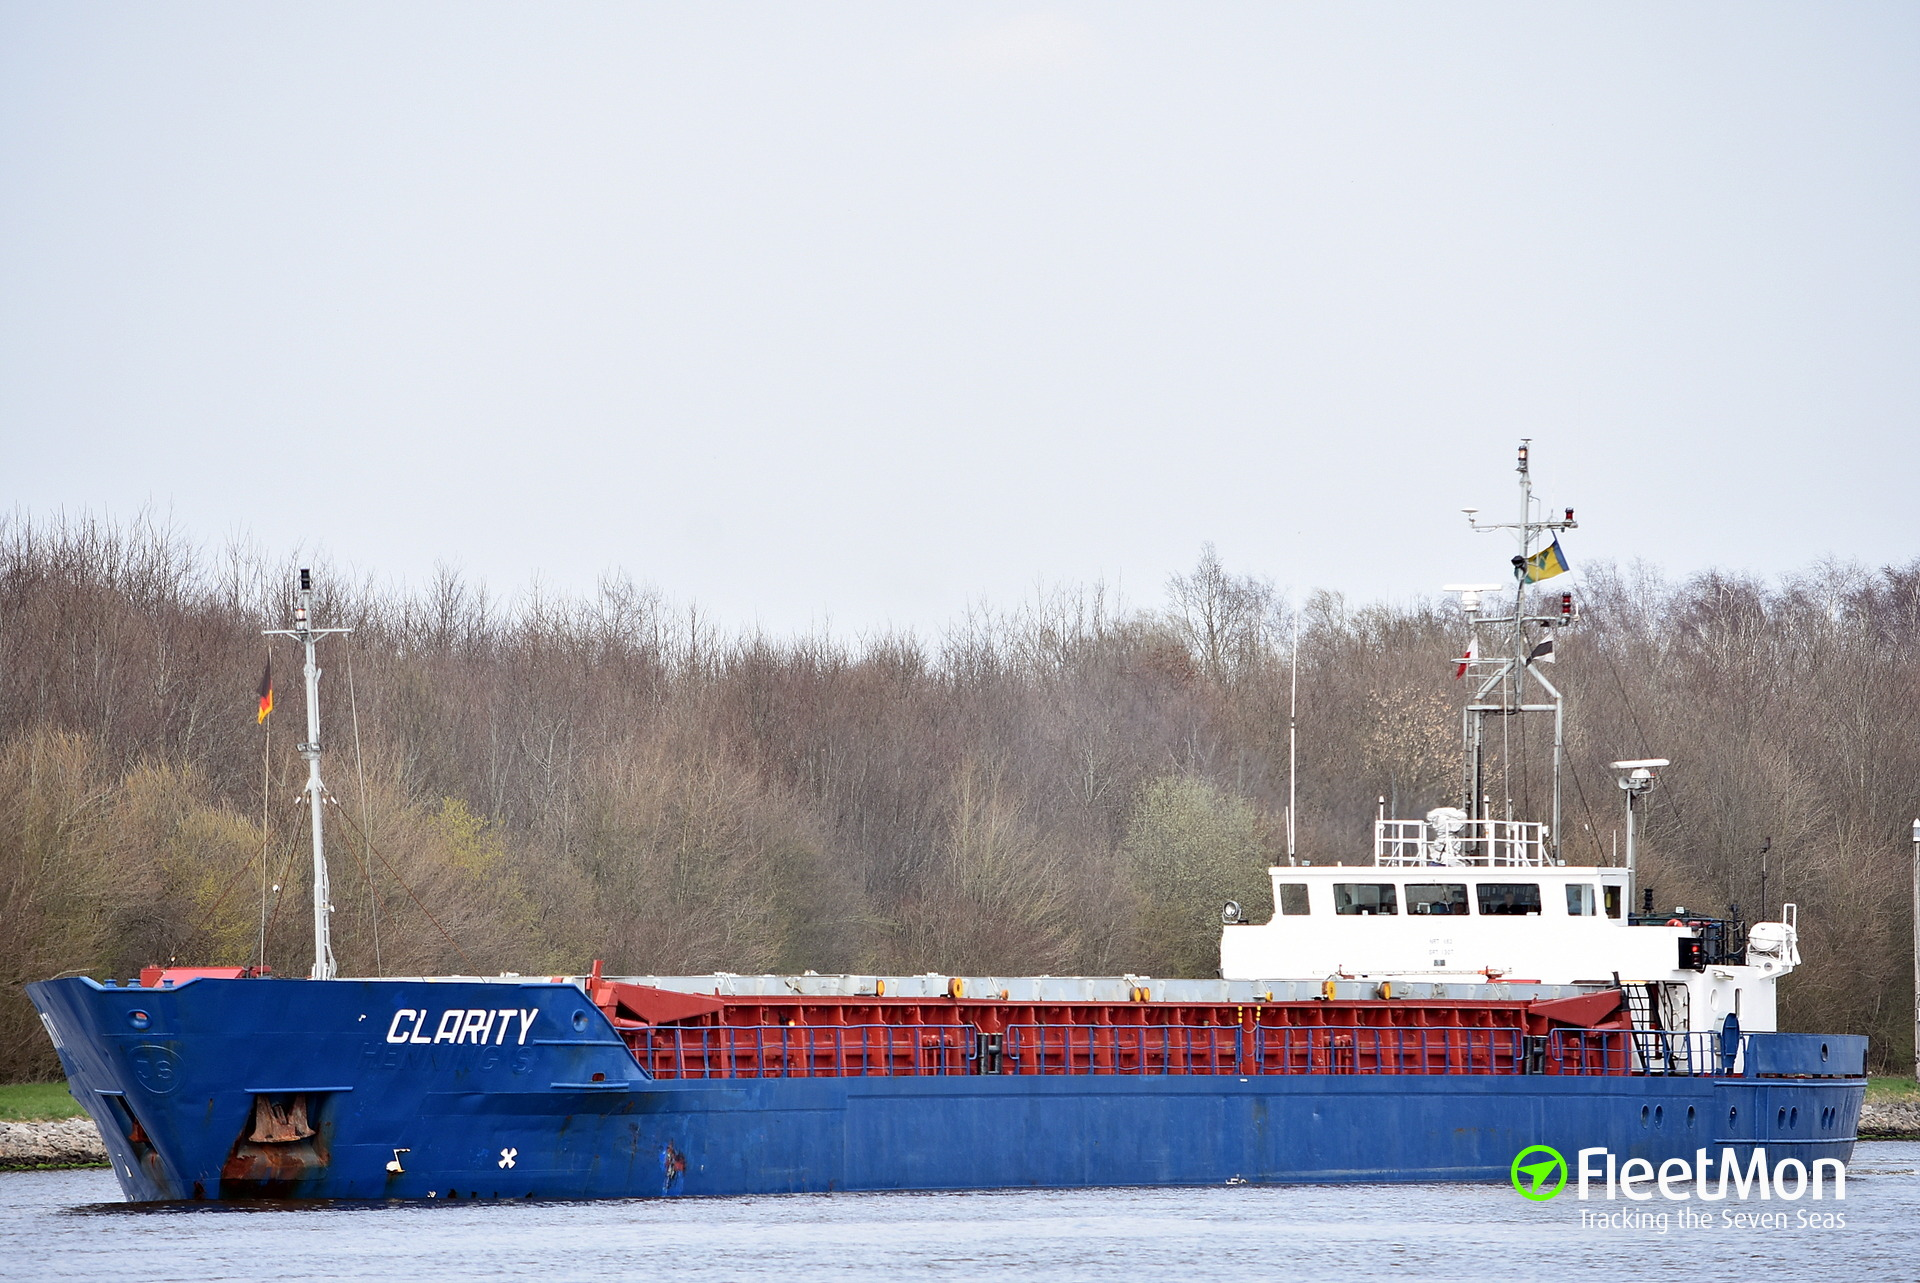 General cargo vessel CLARITY troubled in Brunsbuettel